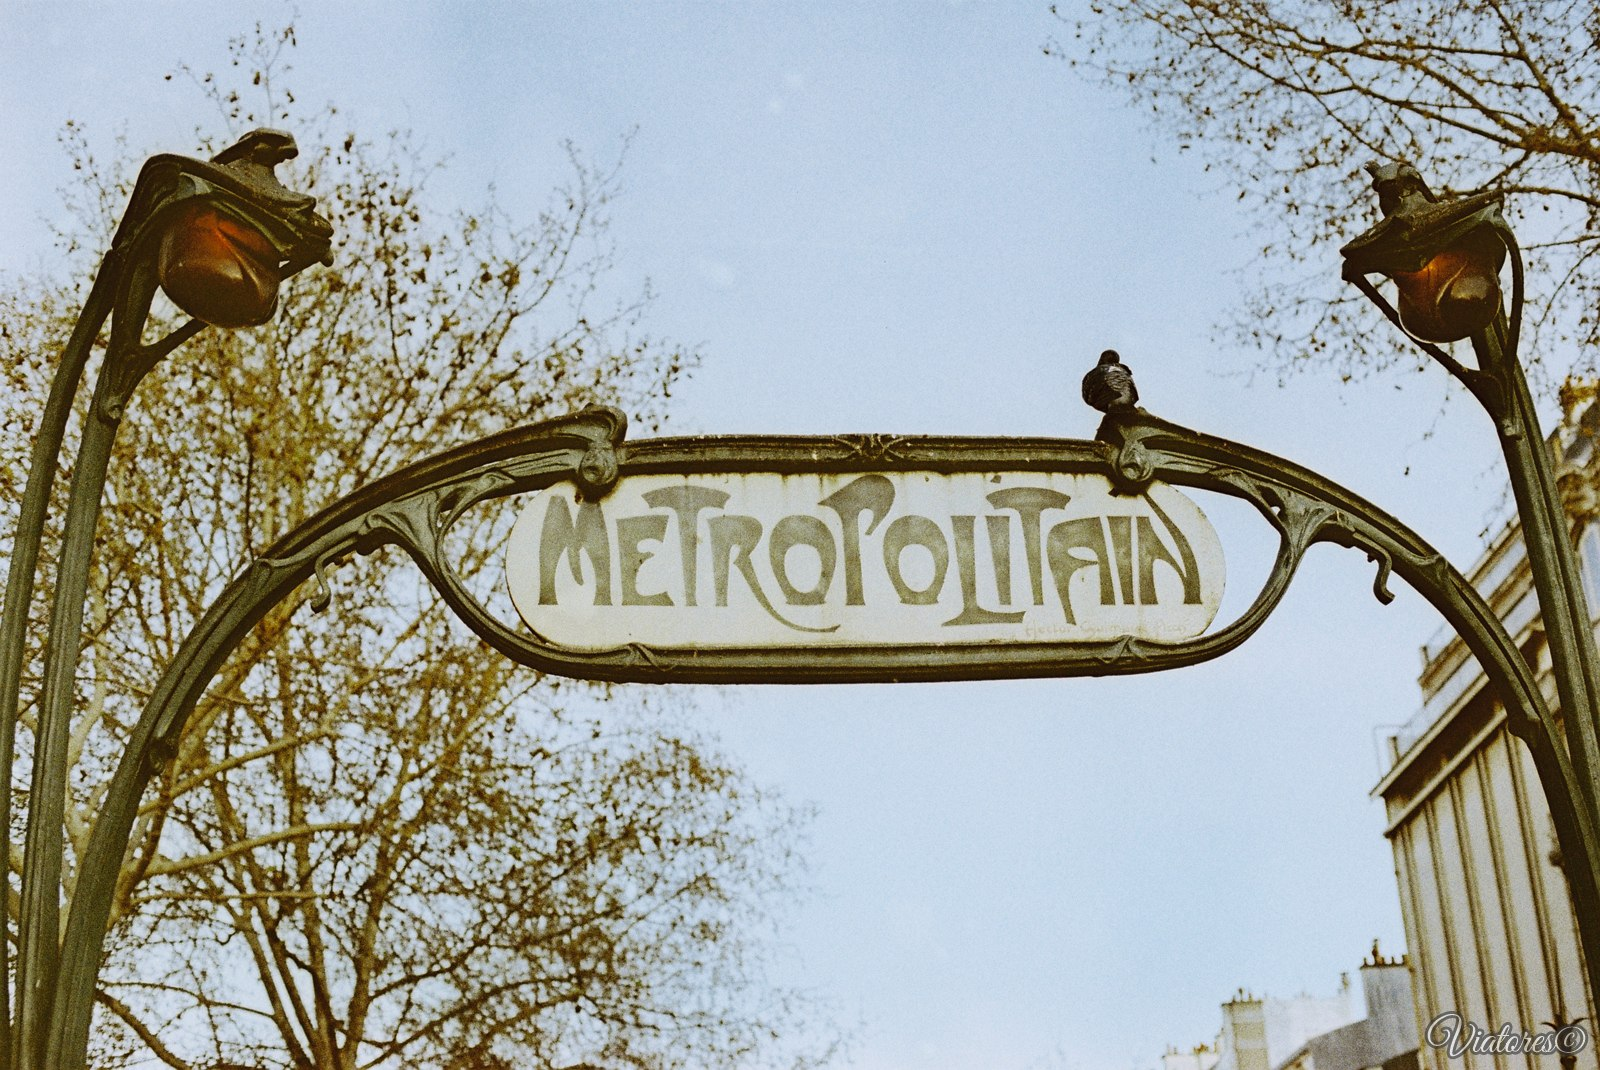 Metropolitain. Paris. France